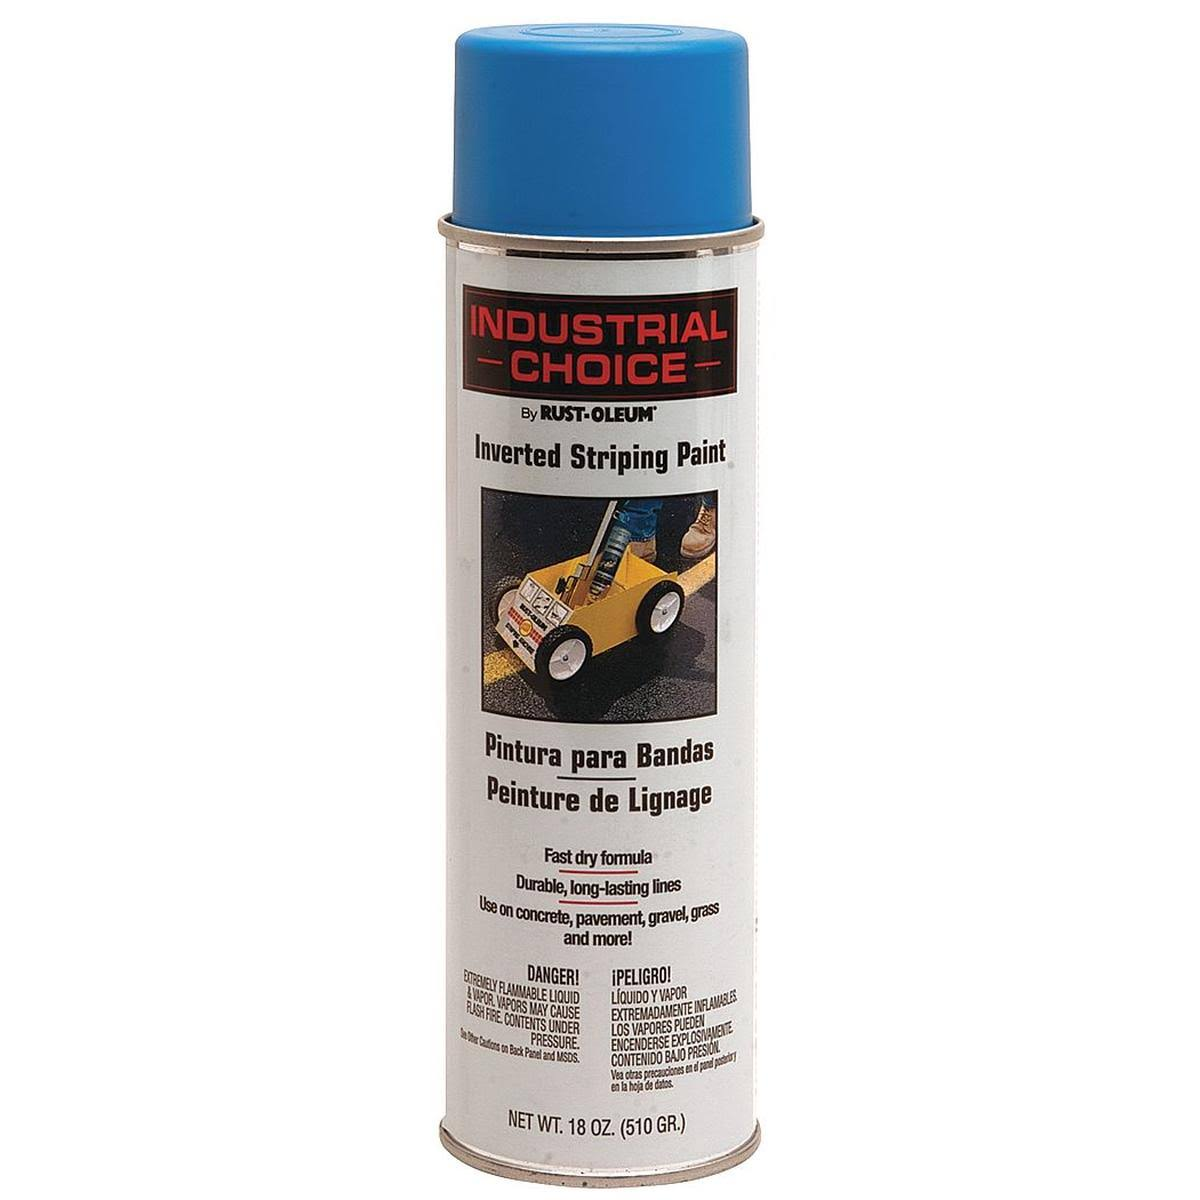 Rust Oleum Industrial Choice Inverted Striping Spray Paint - Dark Blue, 18oz